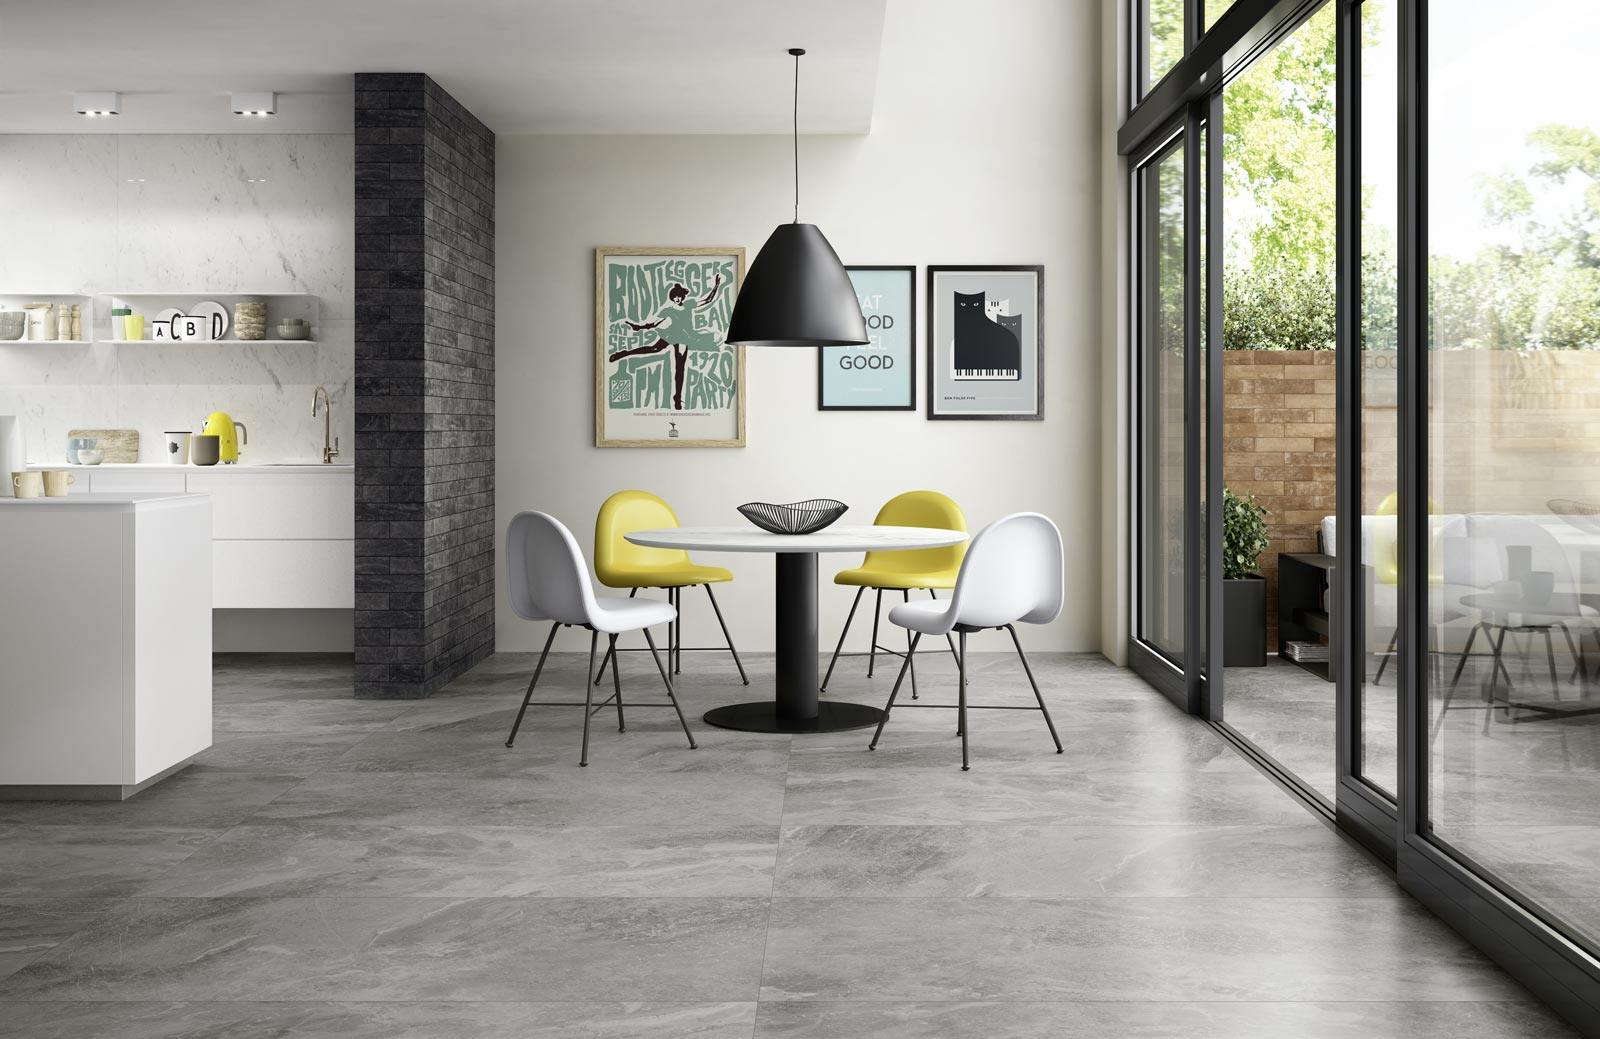 Tiles archive page 2 of 50 european ceramics new italian 750x750mm tiles offering natural stone look in fresh modern tones view the bistrotcatalogue dailygadgetfo Images